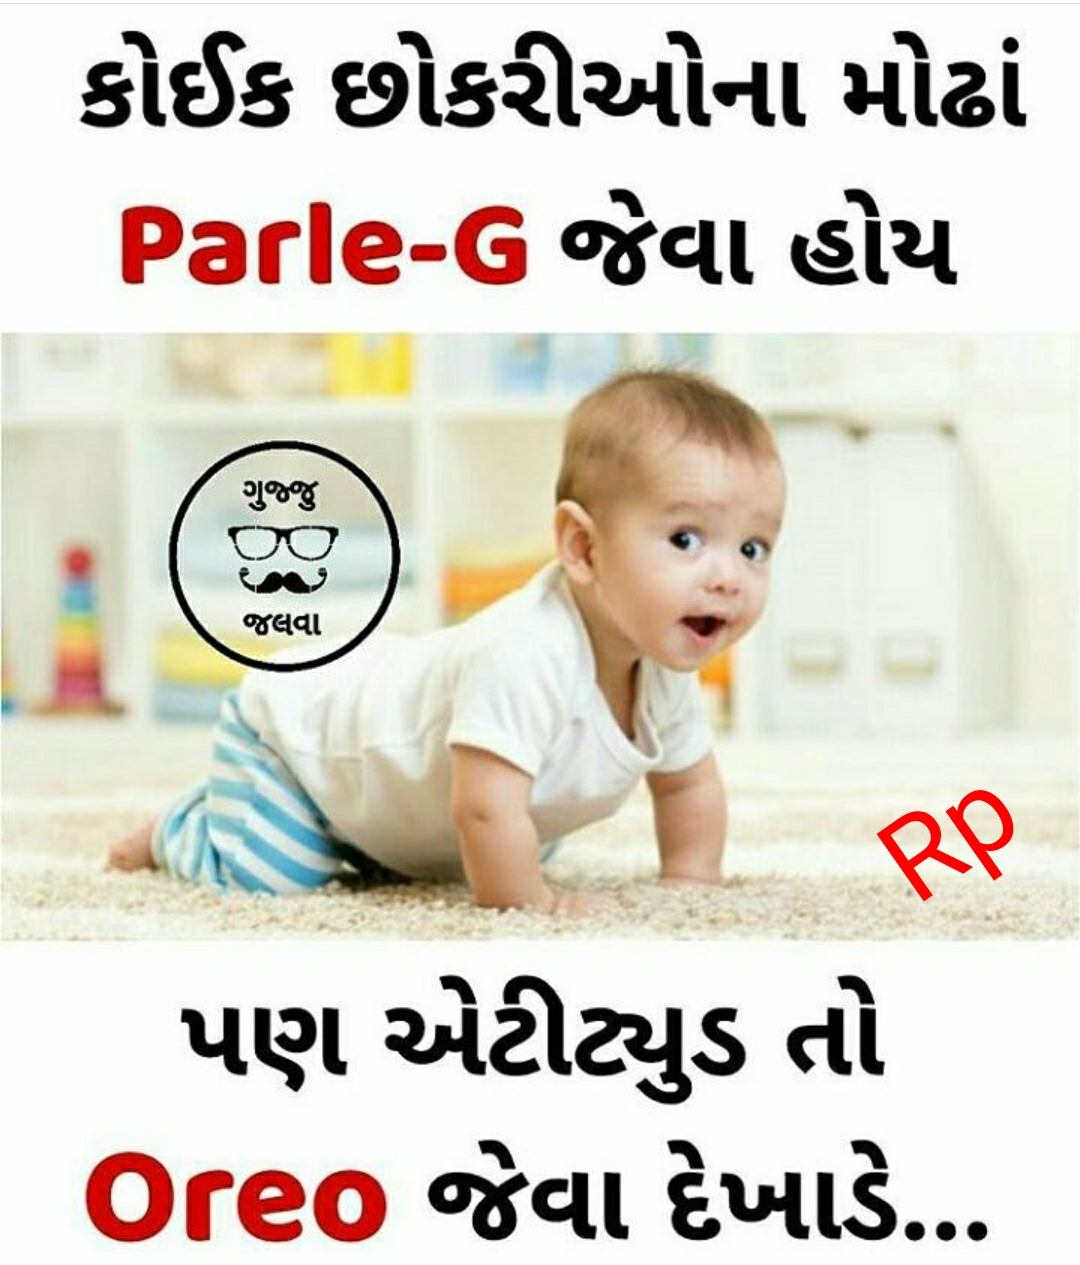 gujarati-jokes-picture-21.jpg